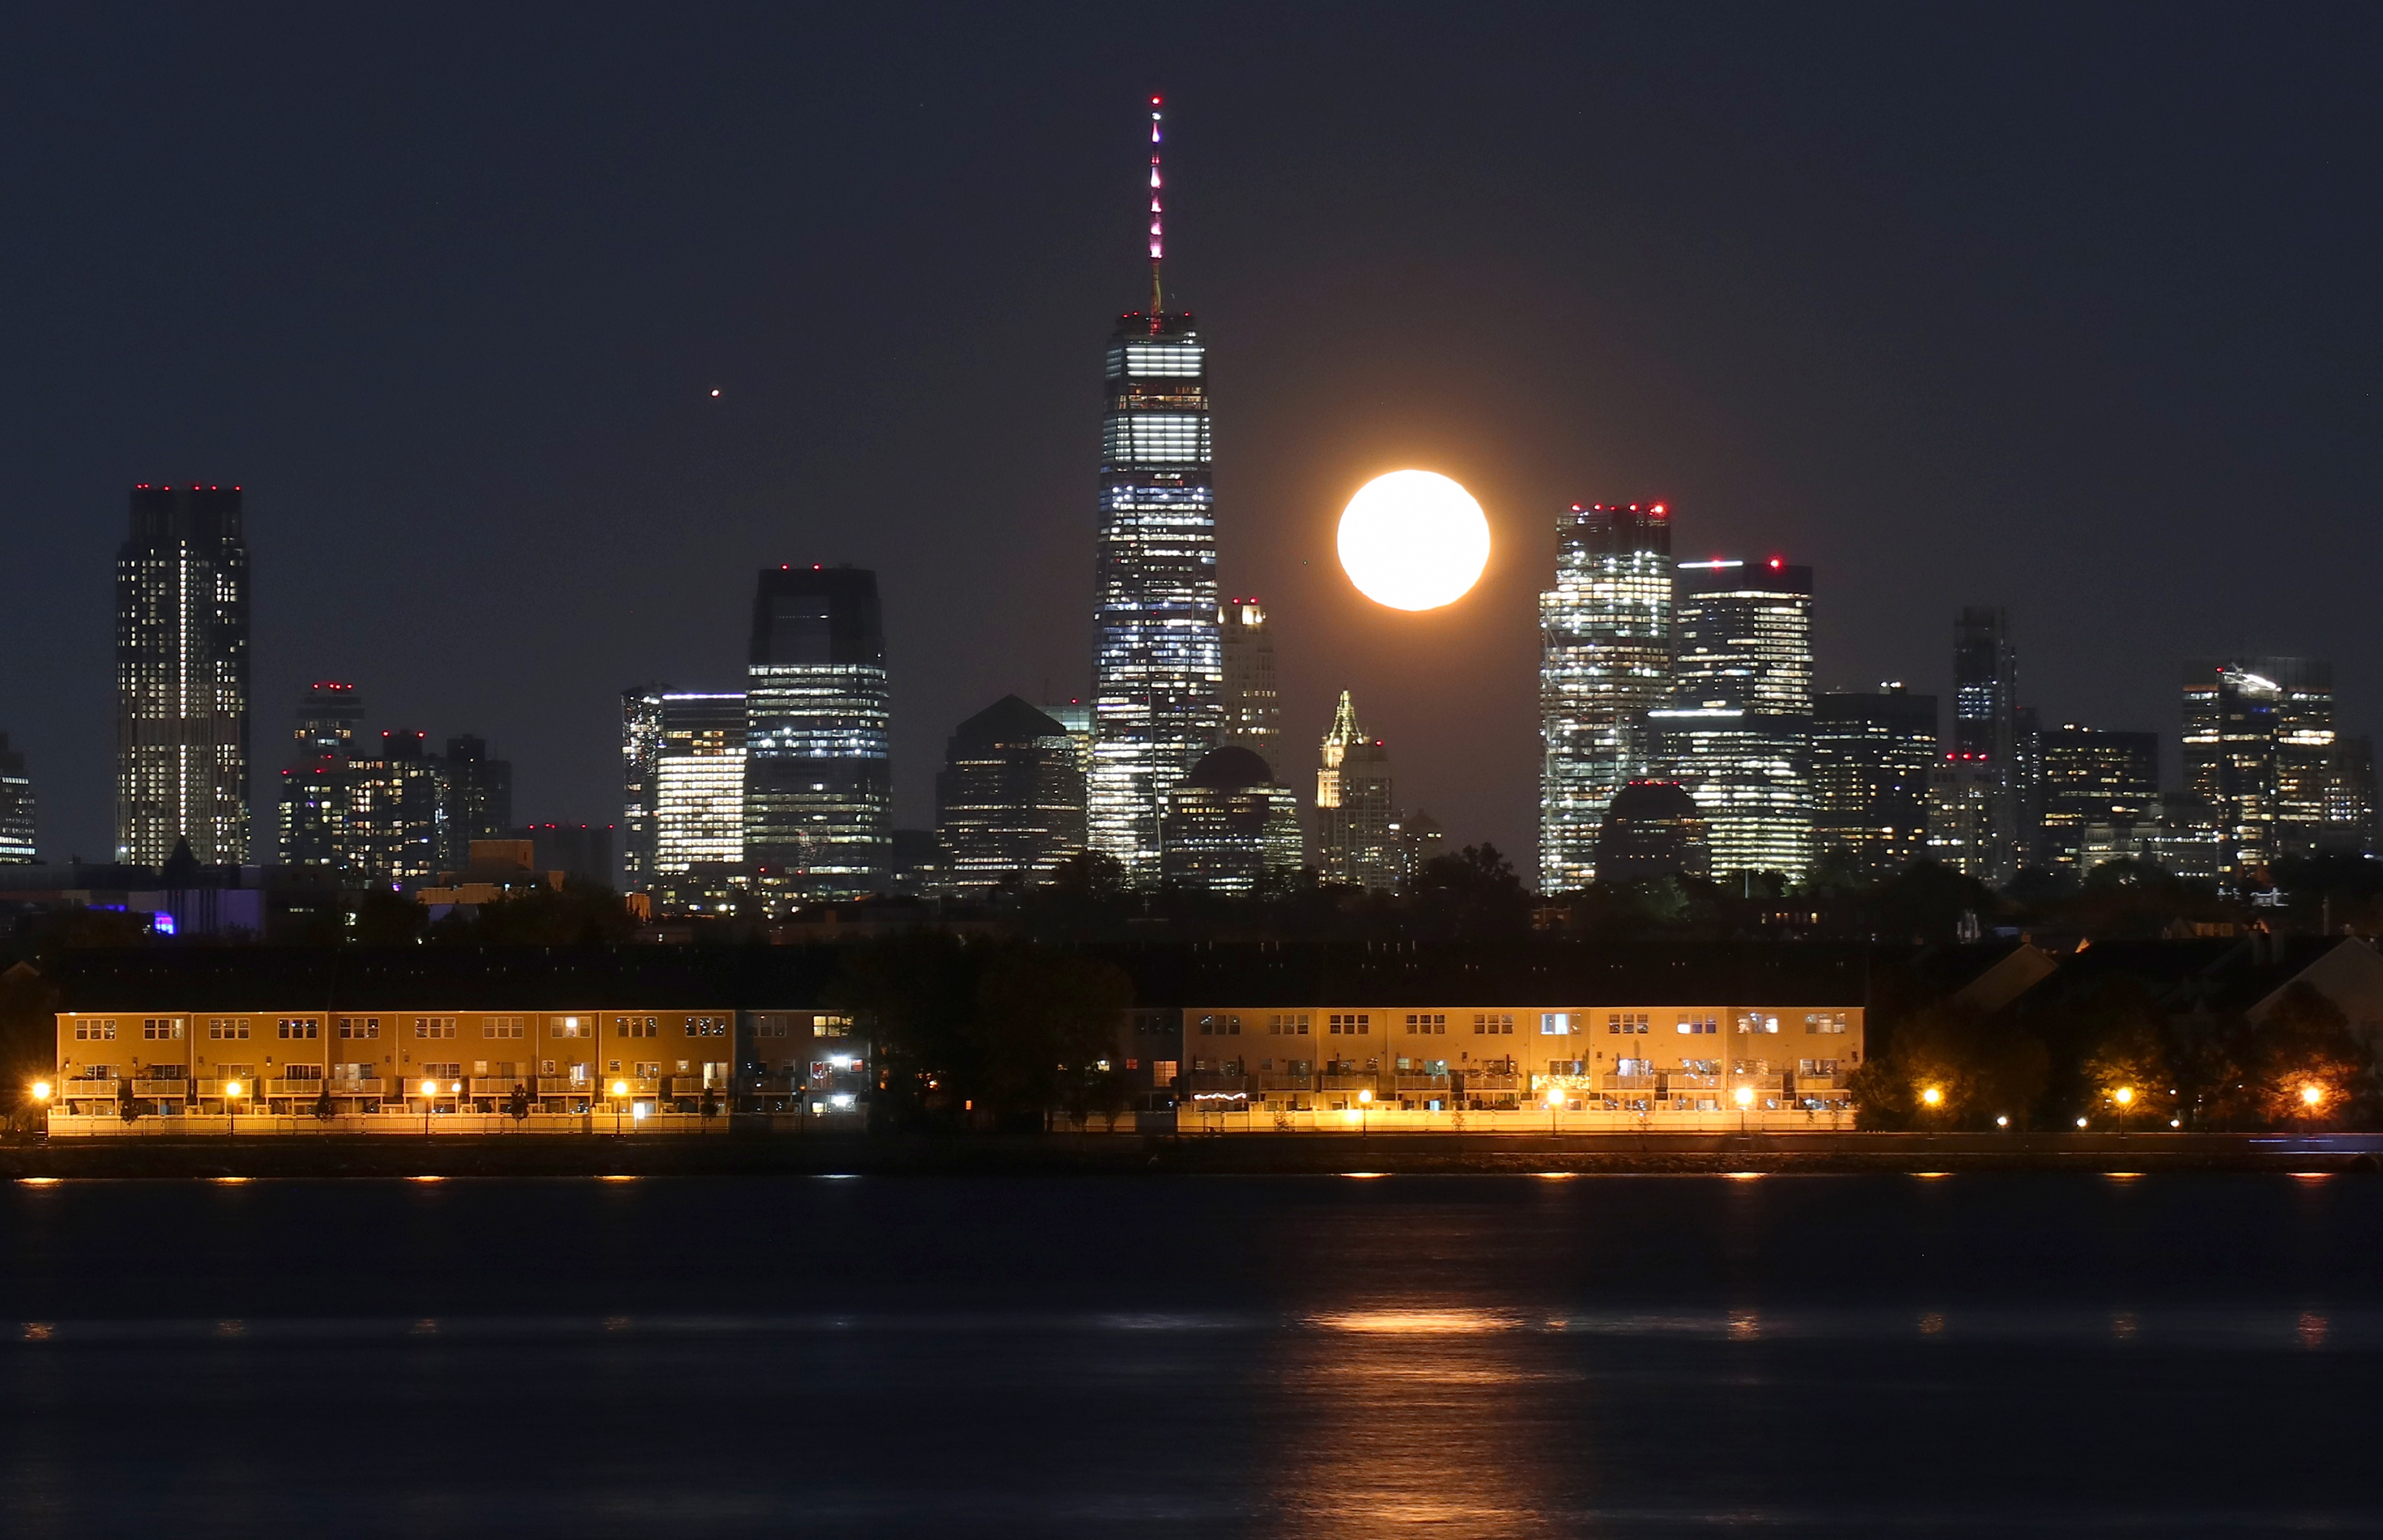 Moon and Mars Rise in New York City